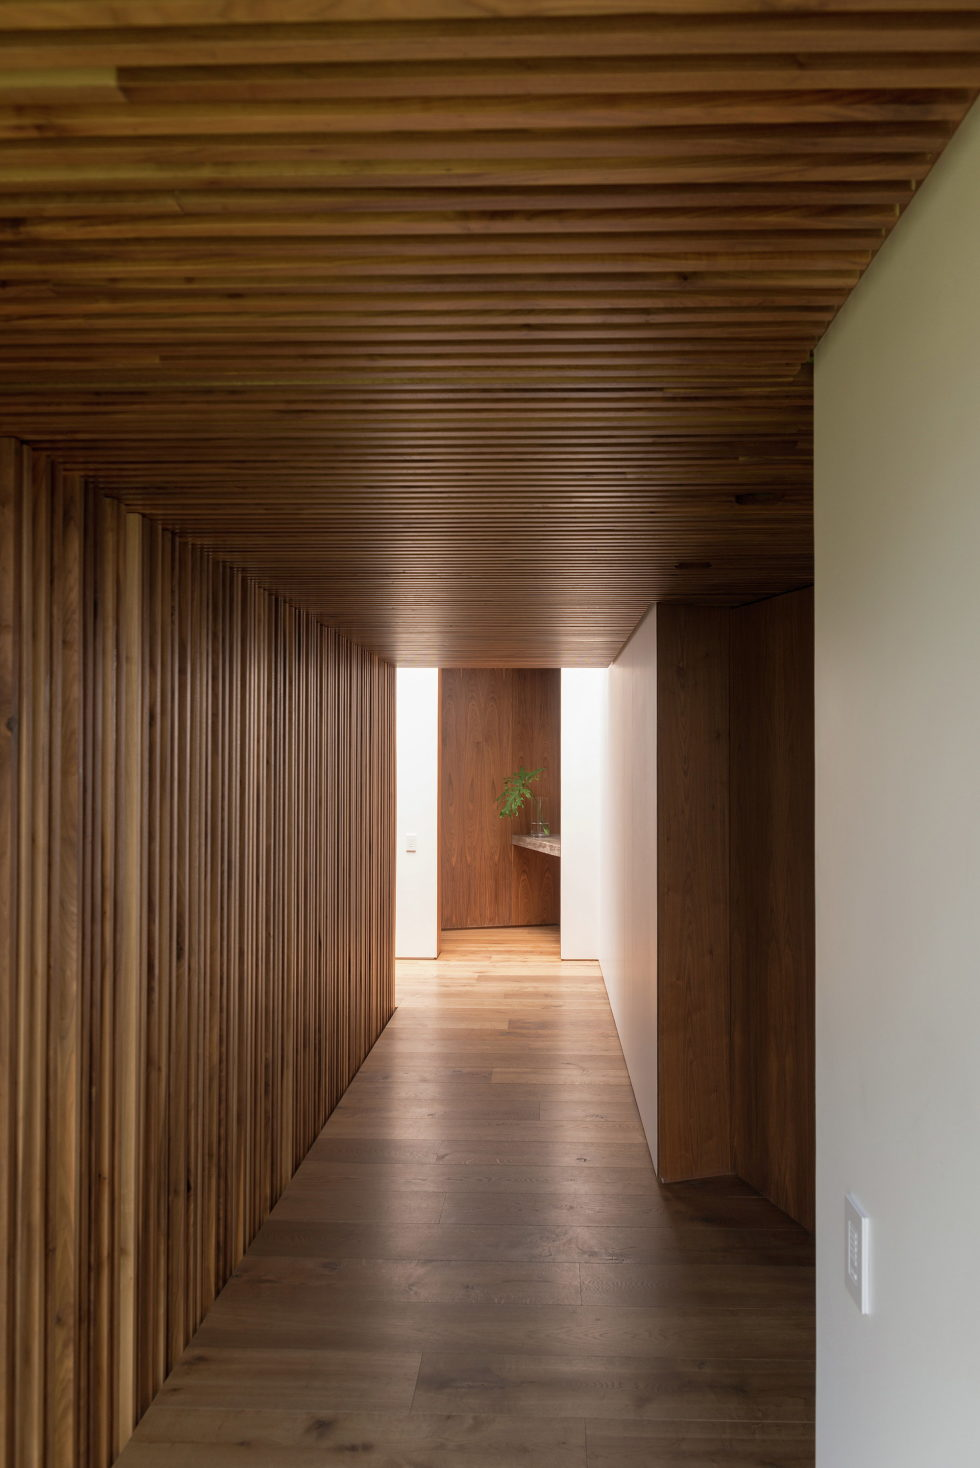 Private Residency Casa V9 In Mexico From VGZ Arquitectura Studio 7